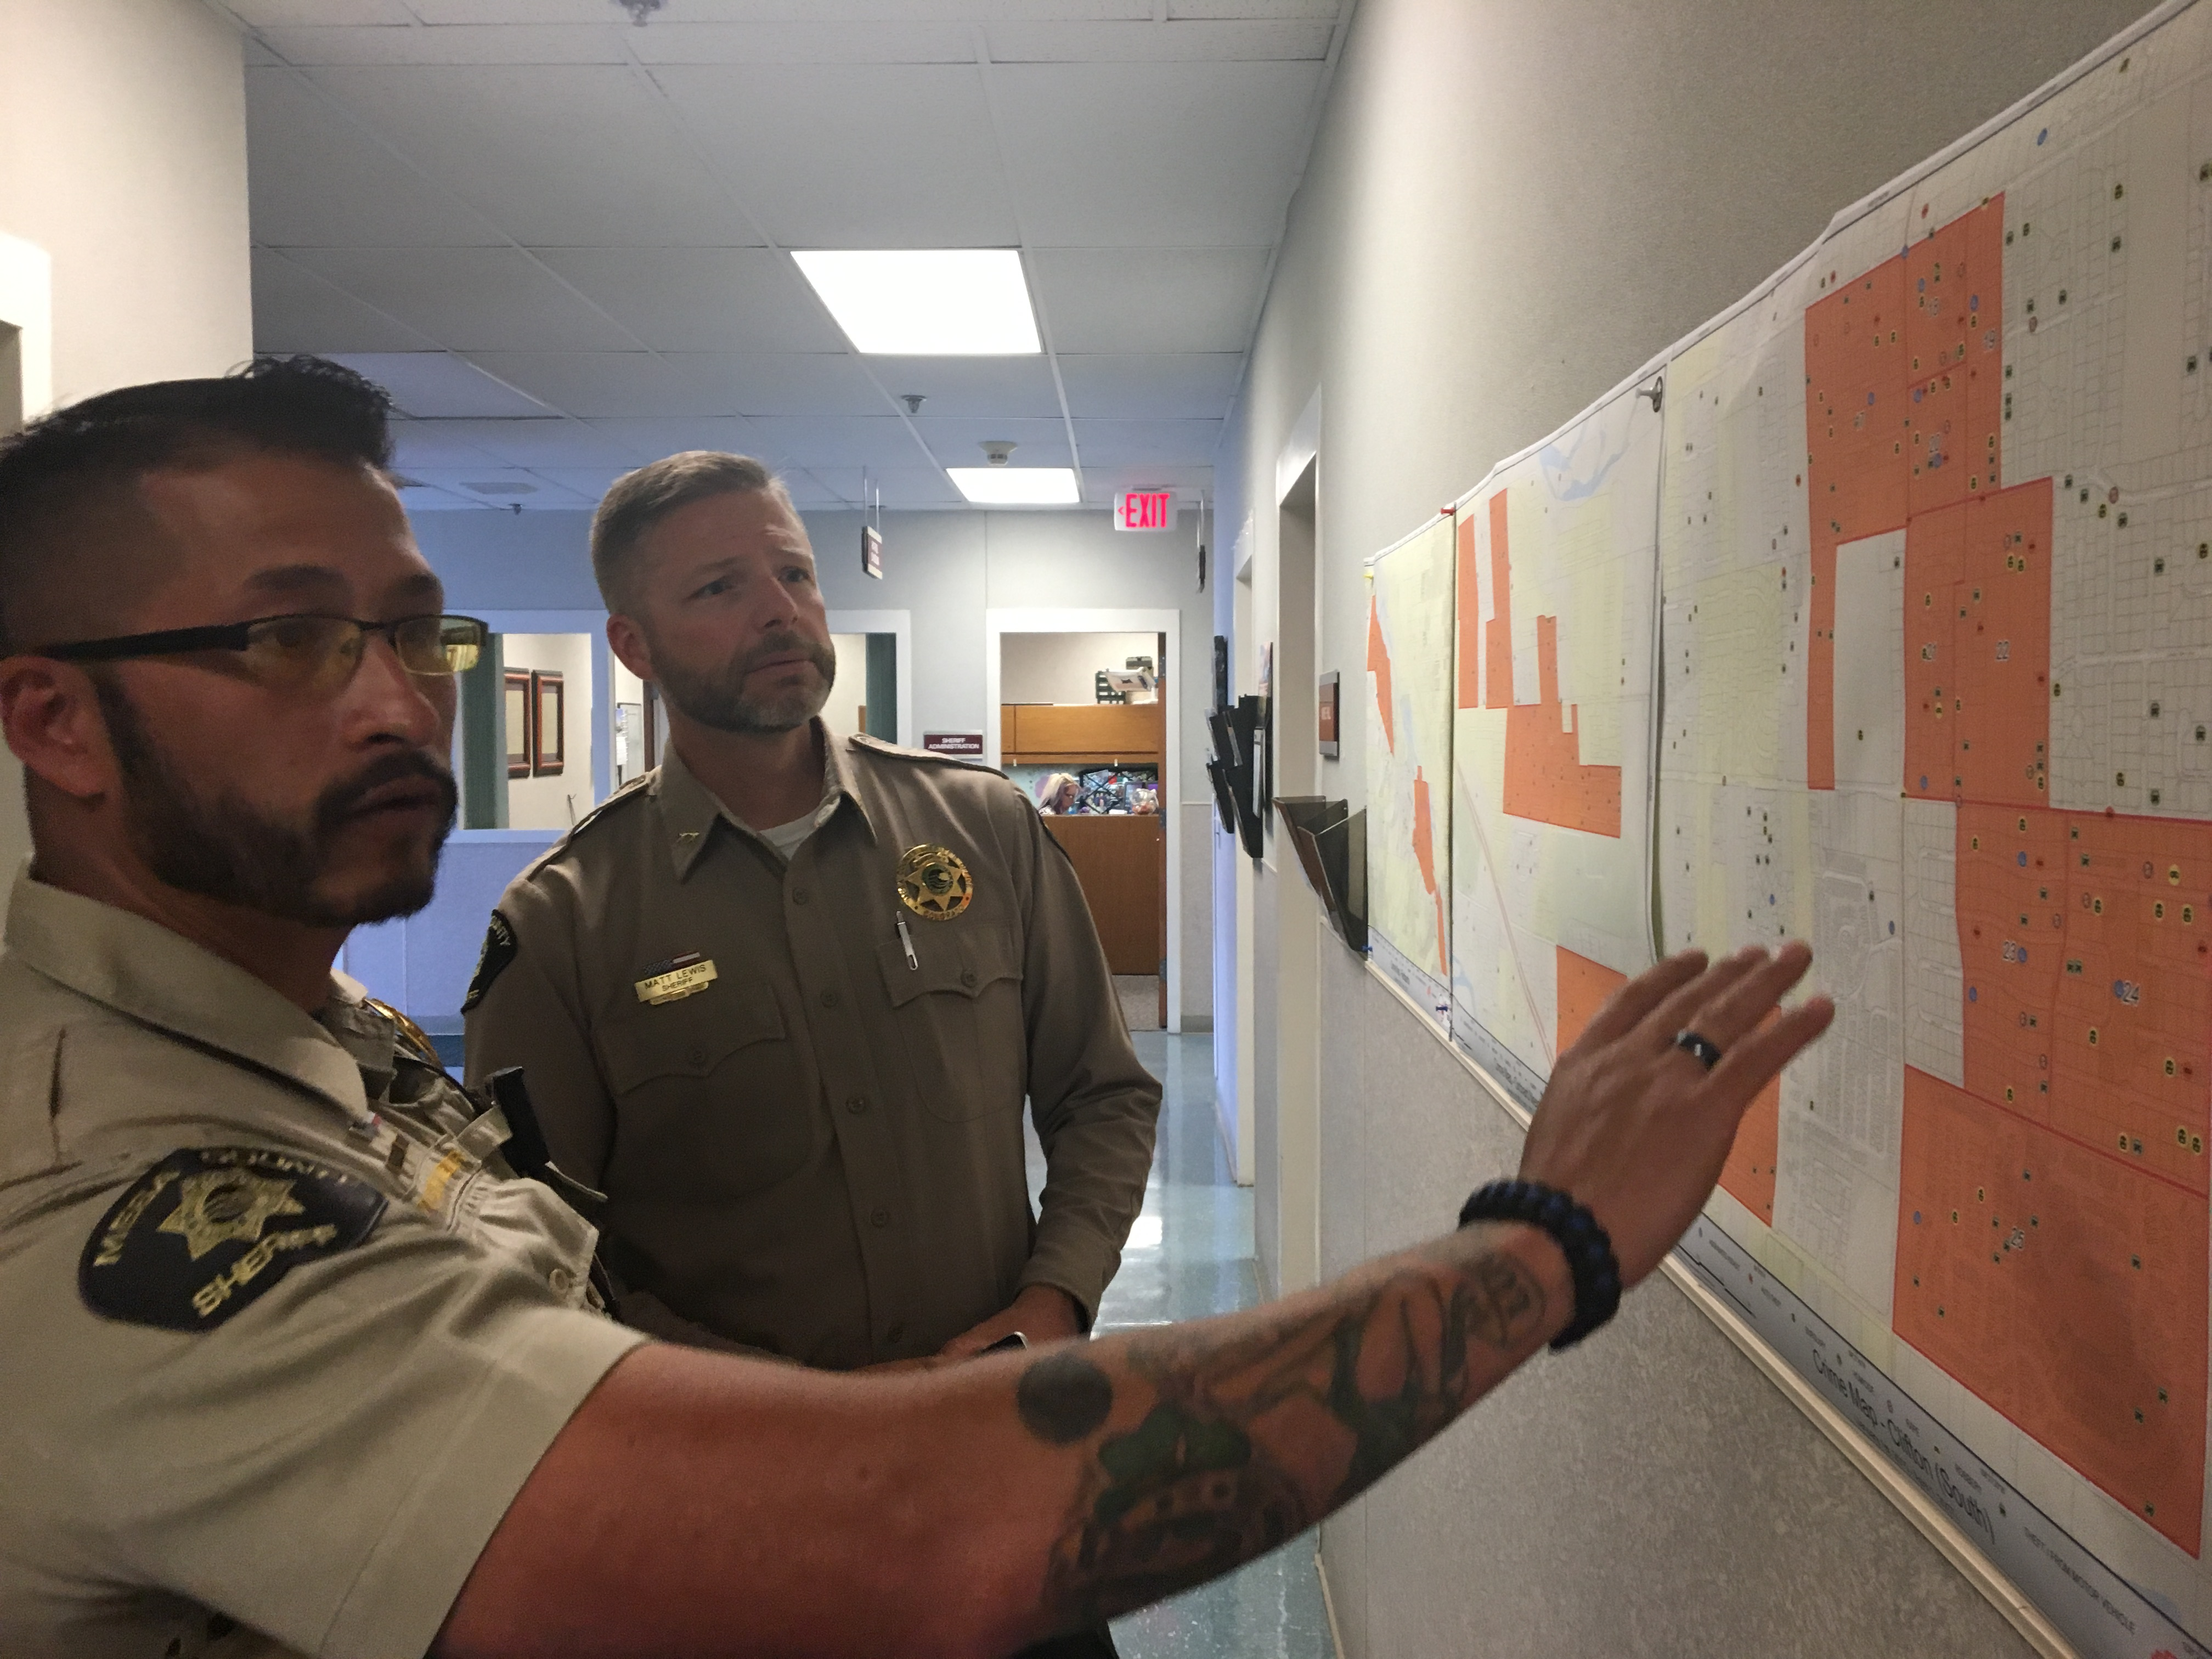 Deputies looking at map